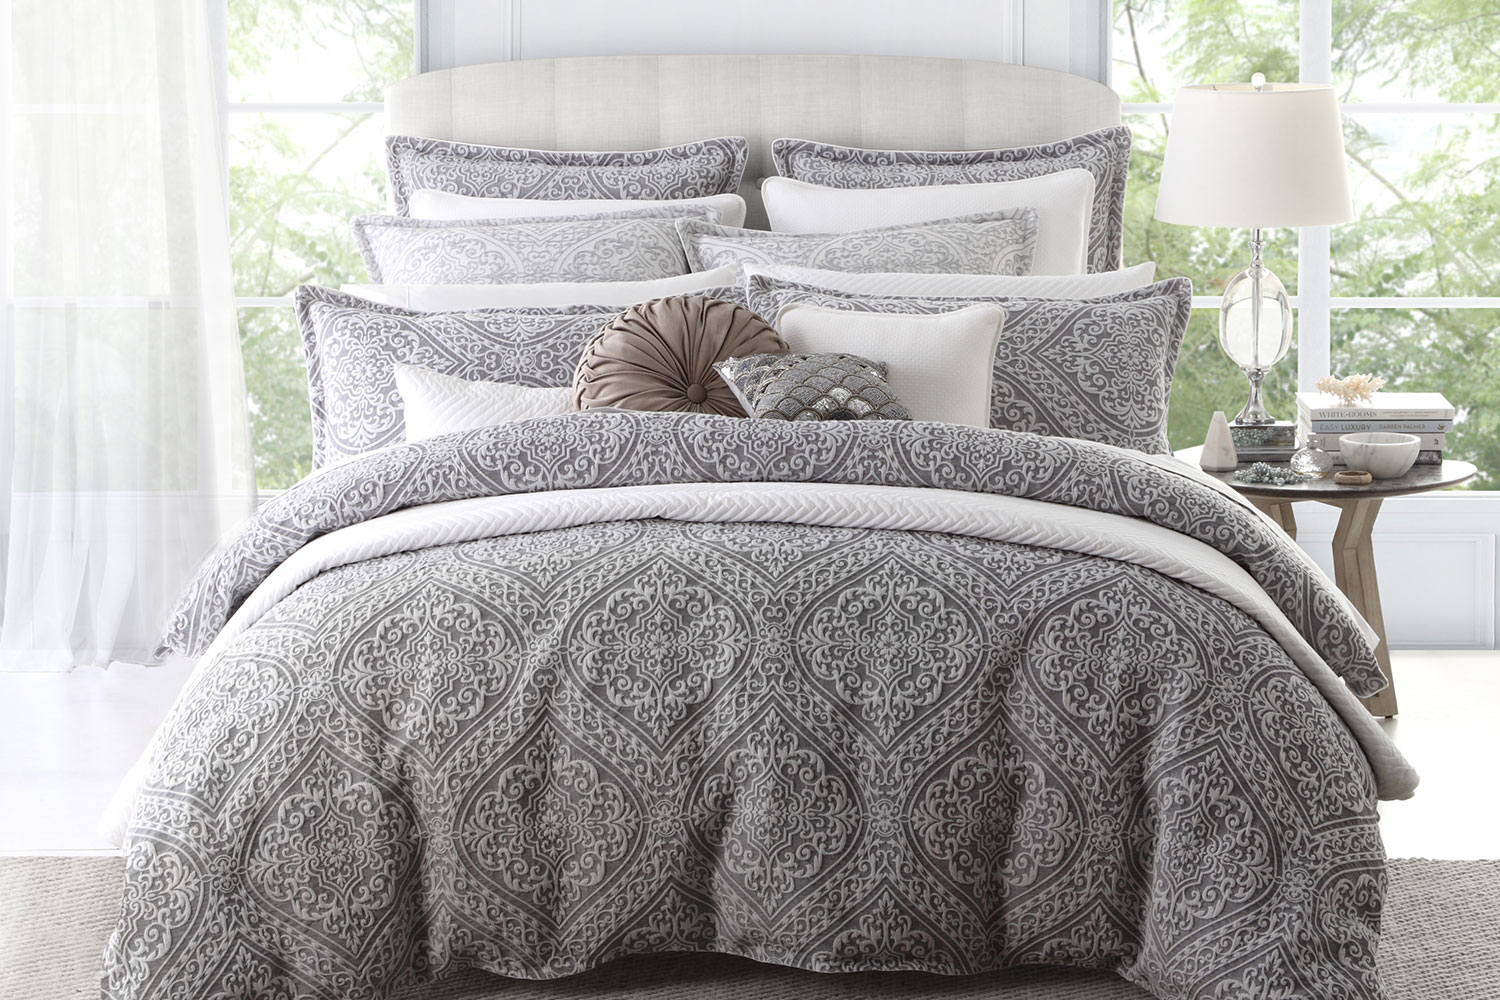 Silver Duvet Cover Manon Silver Duvet Cover Set By Private Collection